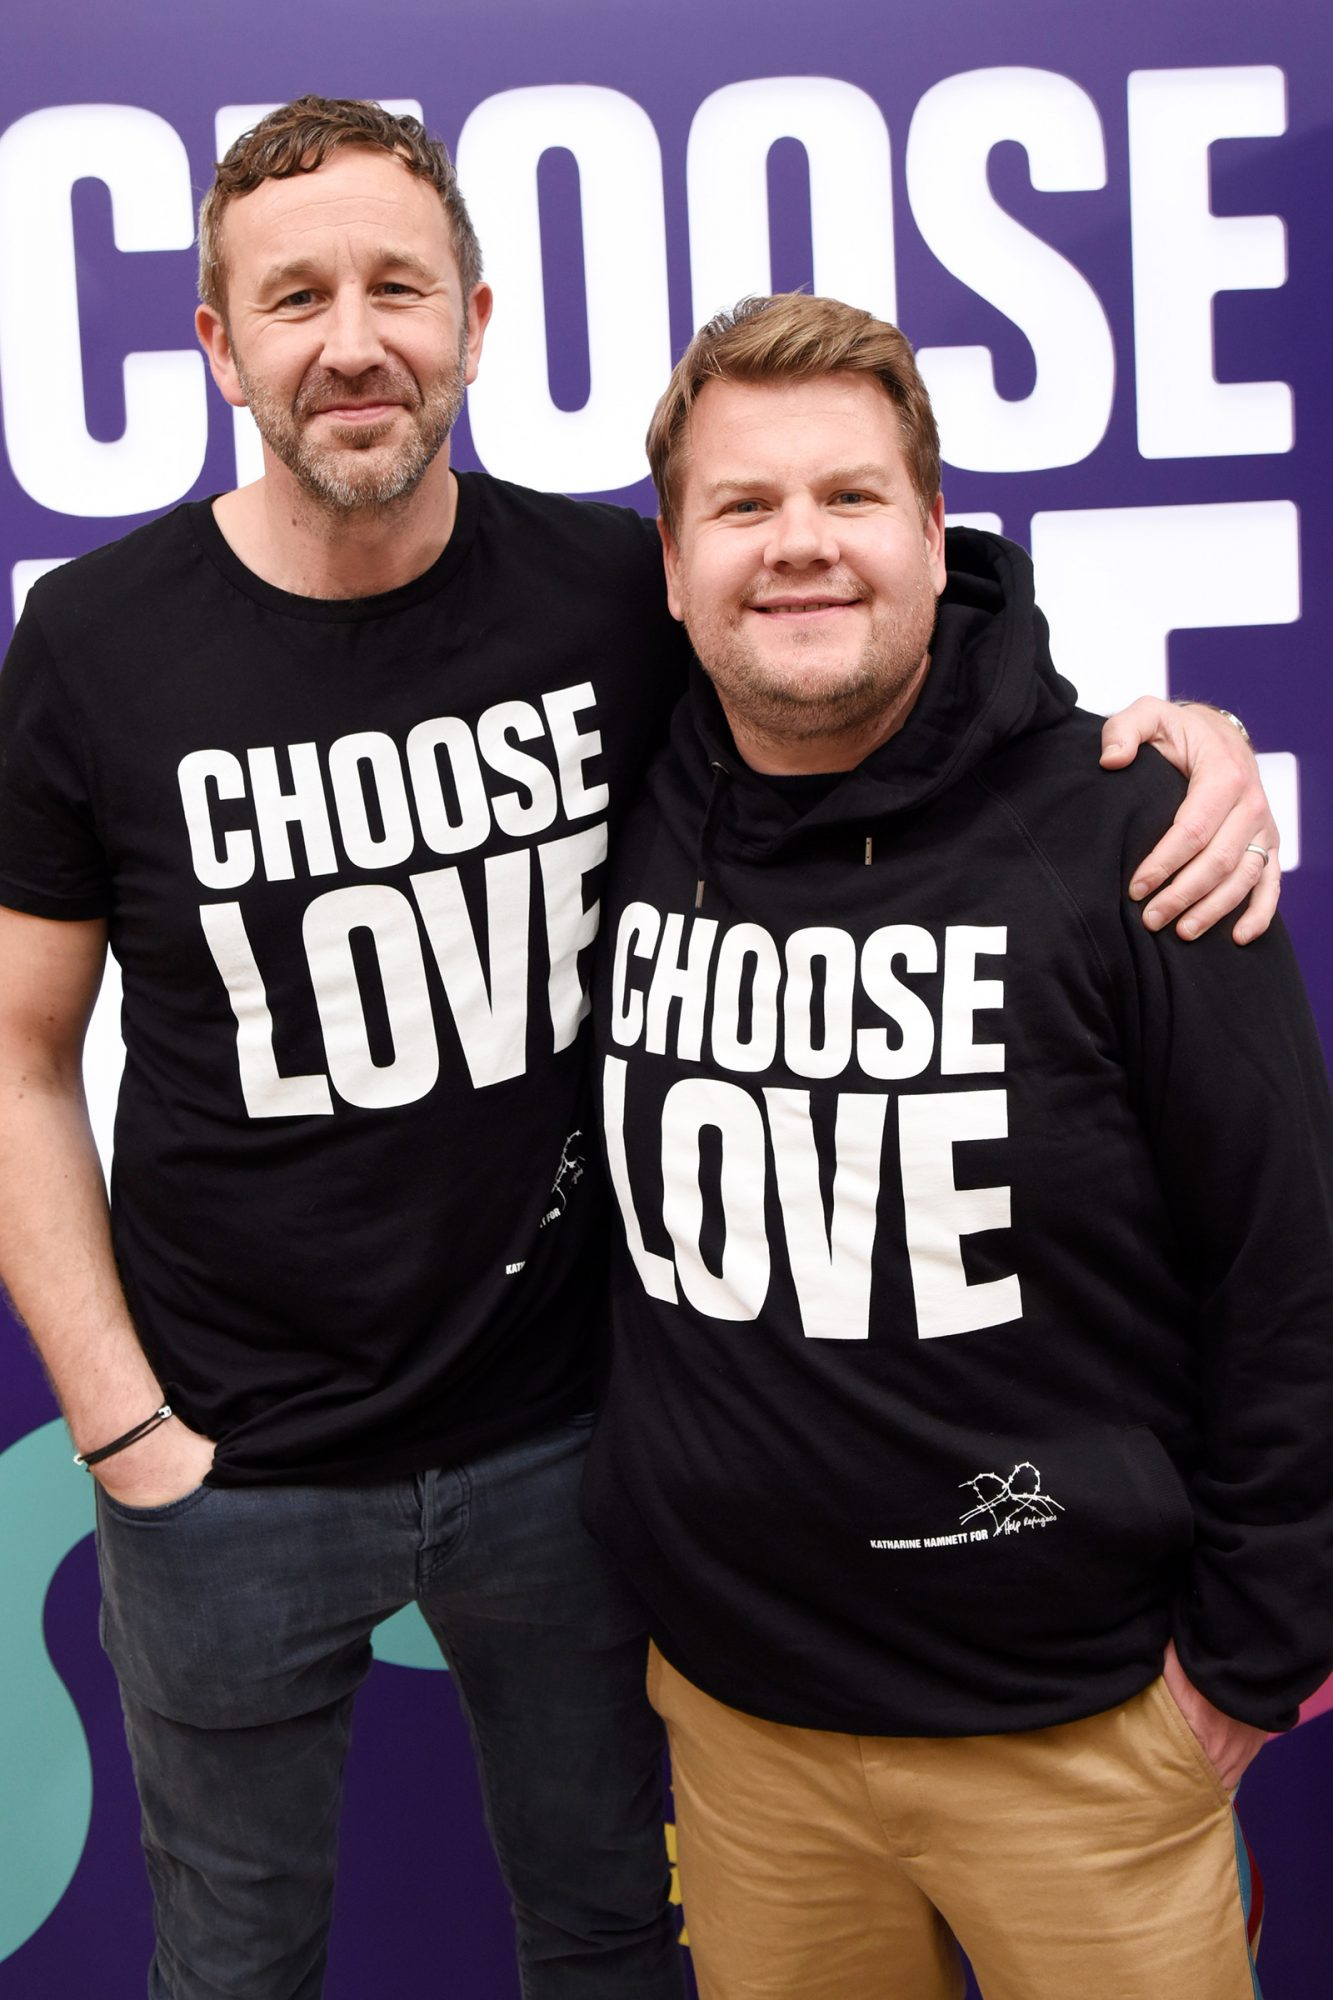 Chris O'Dowd and James Corden attend Choose Love Launches in Los Angeles on Giving Tuesday on December 3, 2019 in Los Angeles, California